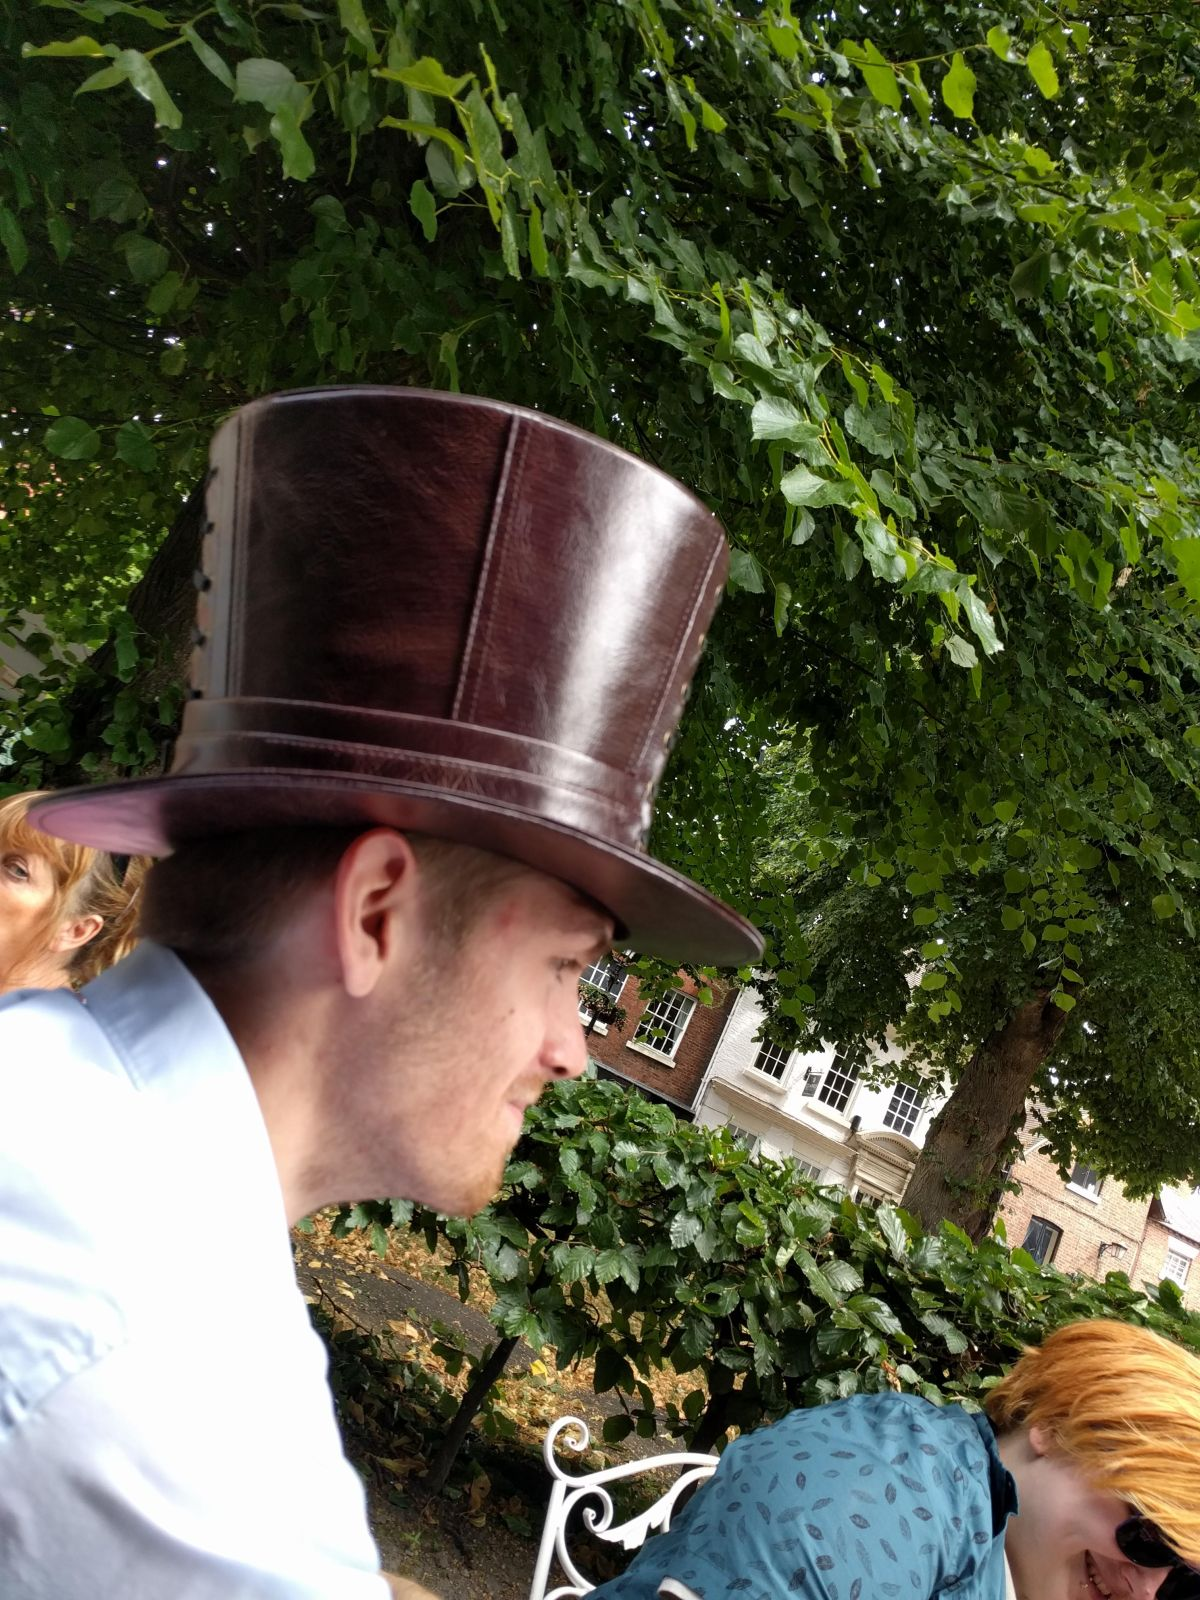 GeekOut Shrewsbury July '18 – Steampunk'd